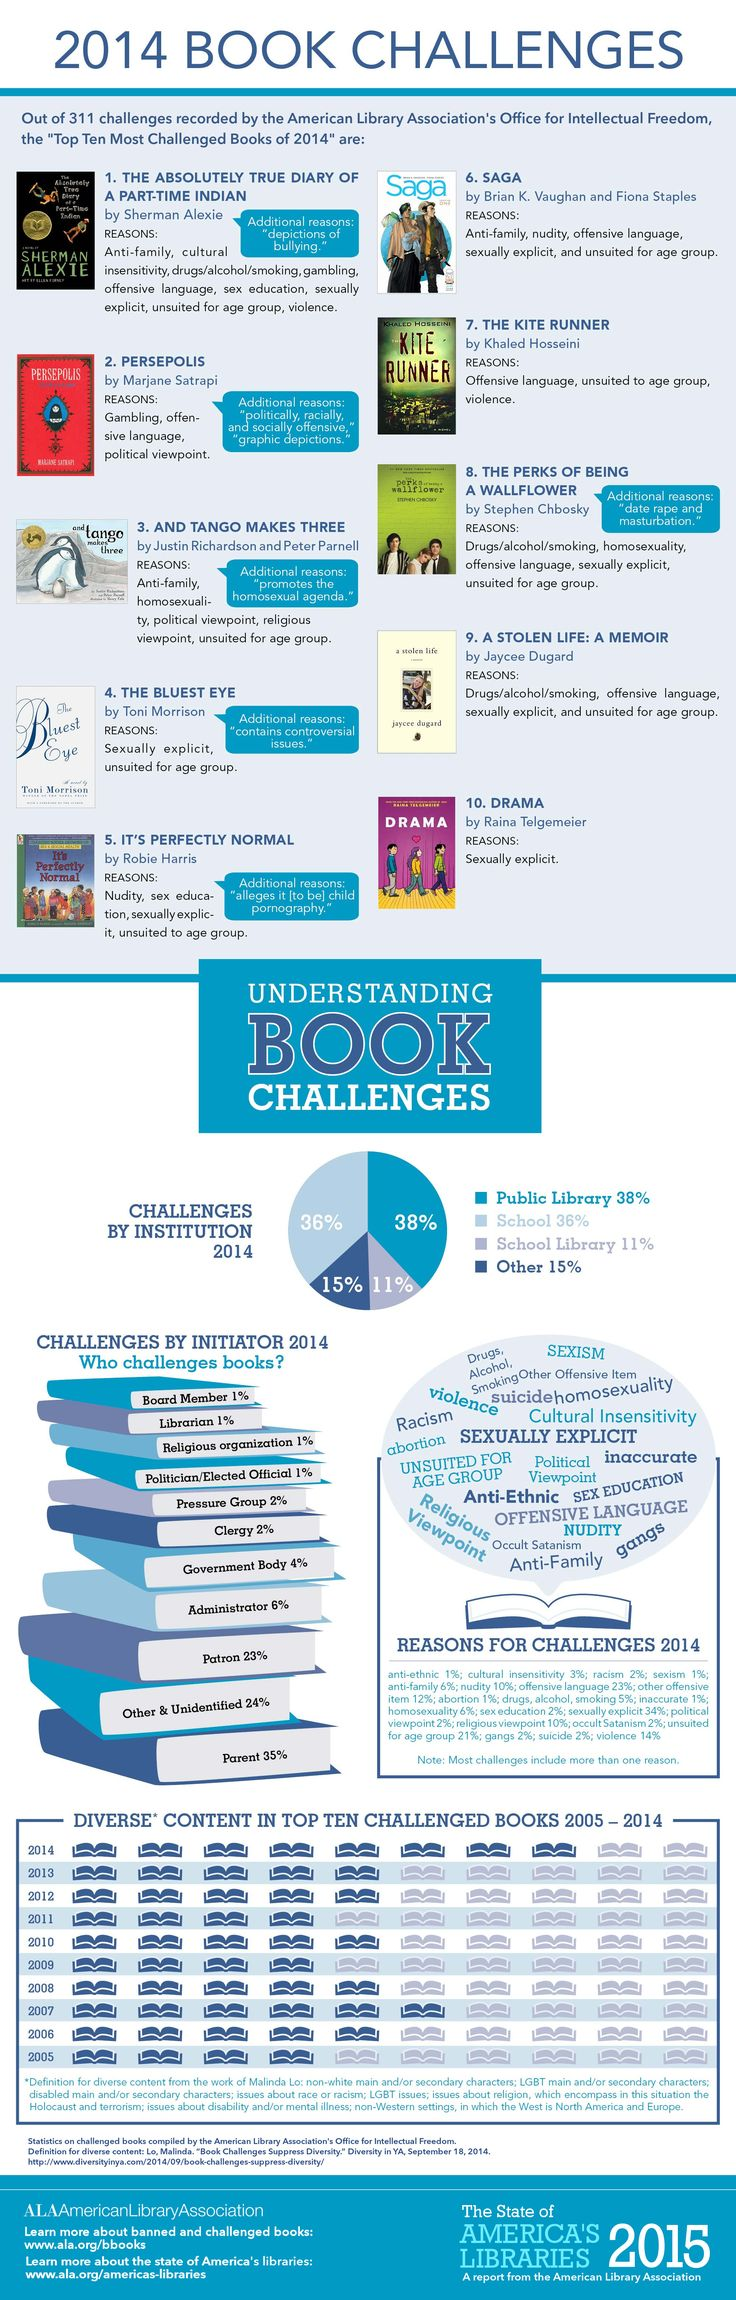 Link To Full Sizegraphic: 2014 Book Challenges